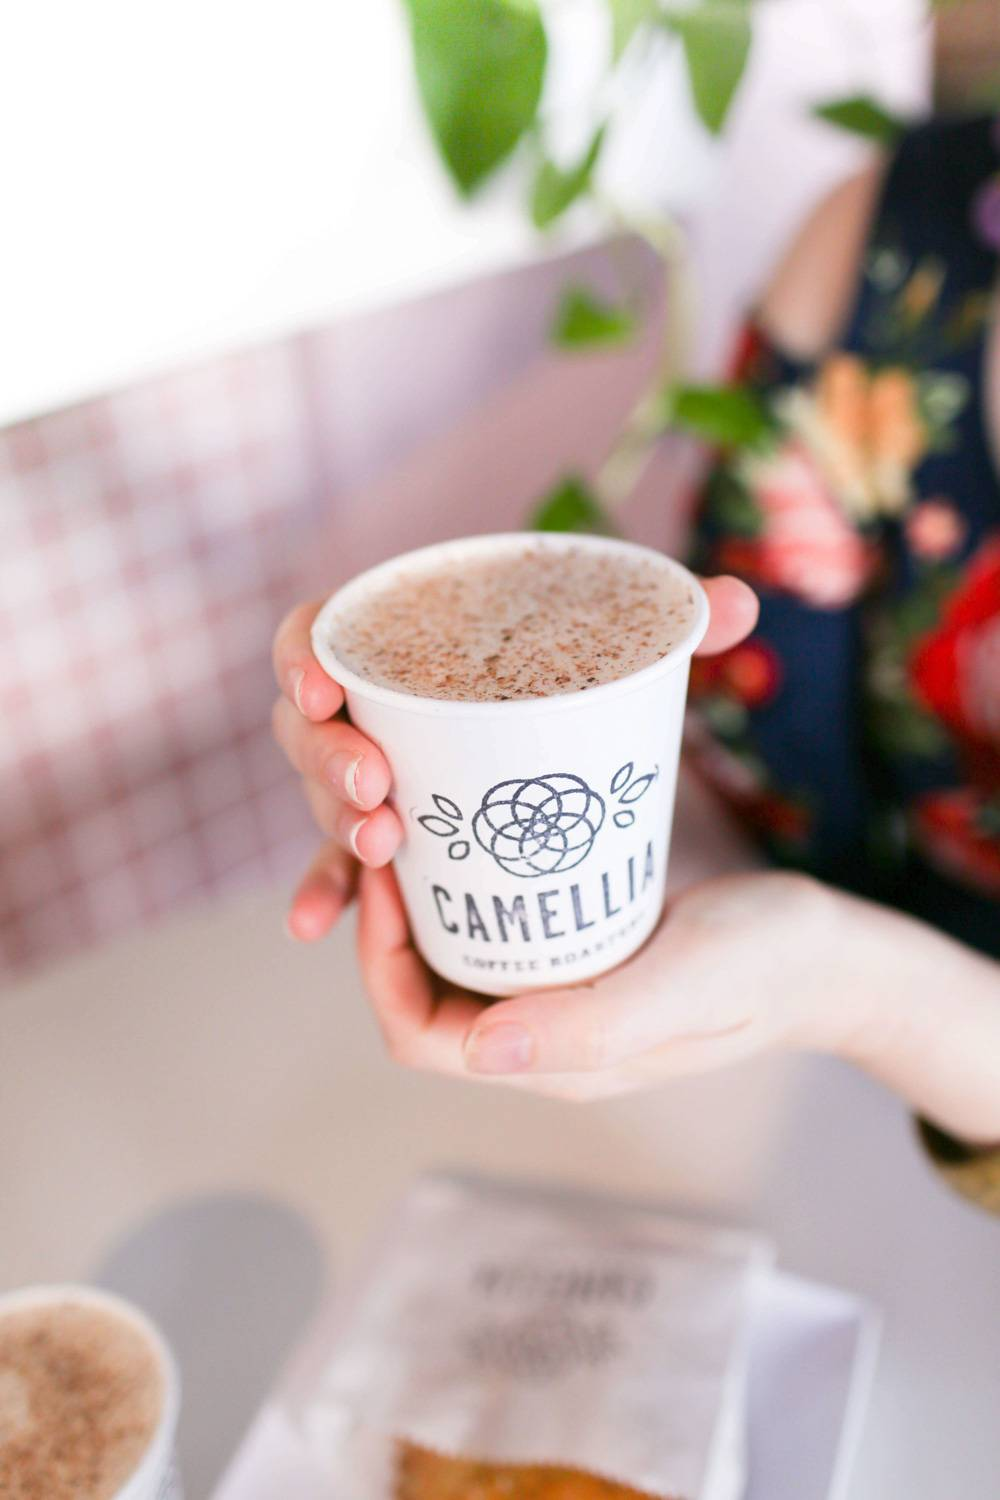 Looking for the most instagrammable places in Sacramento? Well, look no further- we'll pulled together the list of all the cute and instagrammable coffee shops, and wall art, and cute ice cream parlours so you can snap away including Camella